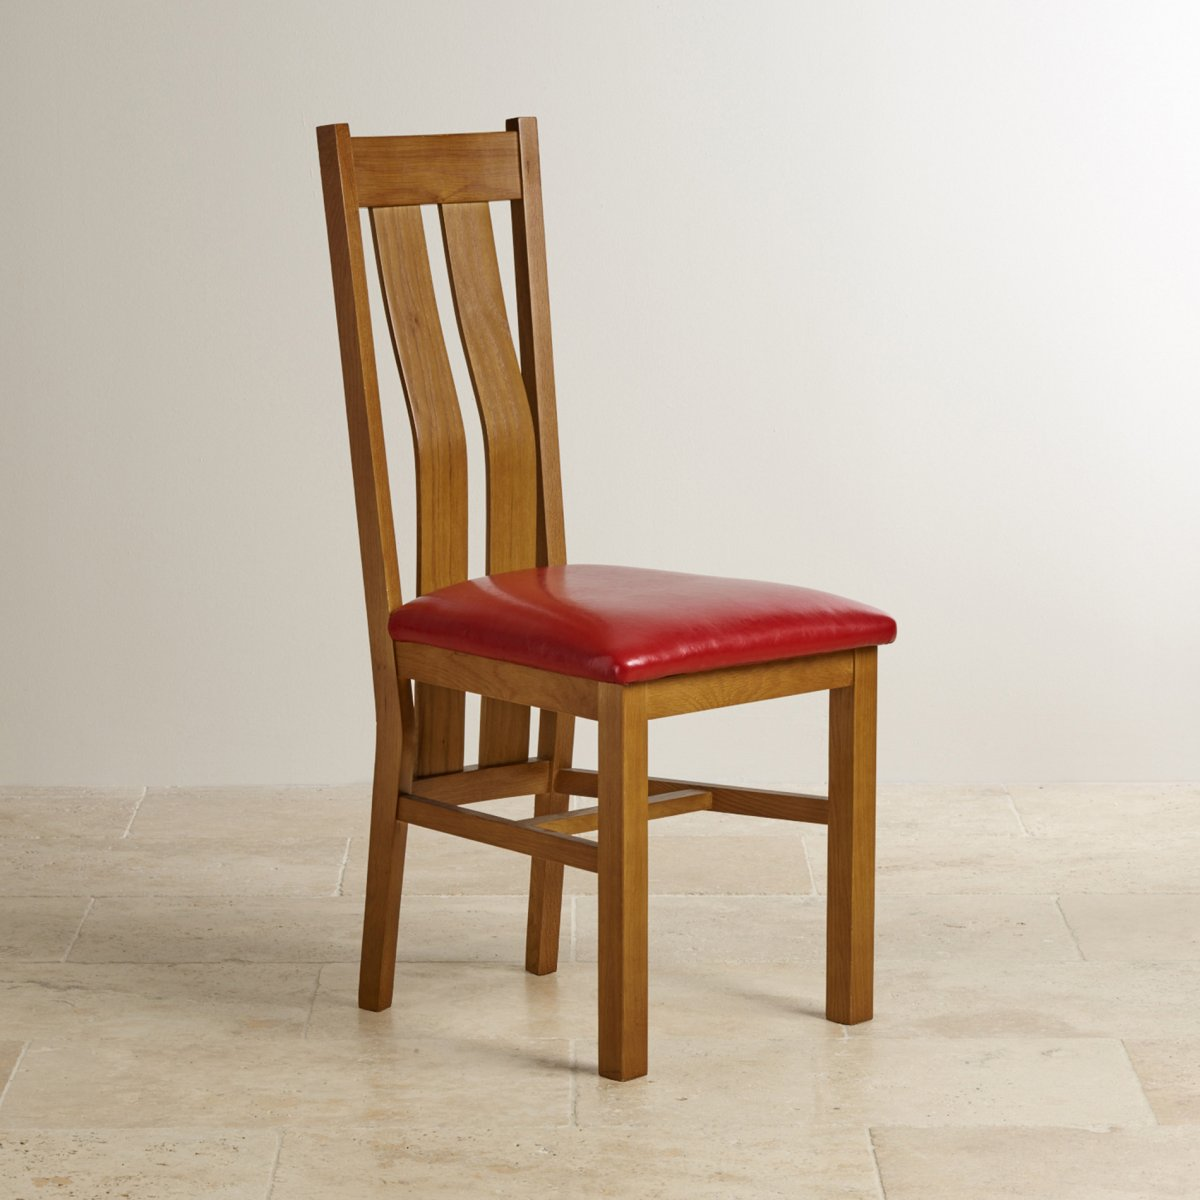 Arched Back Rustic Solid Oak Red Leather Dining Chair